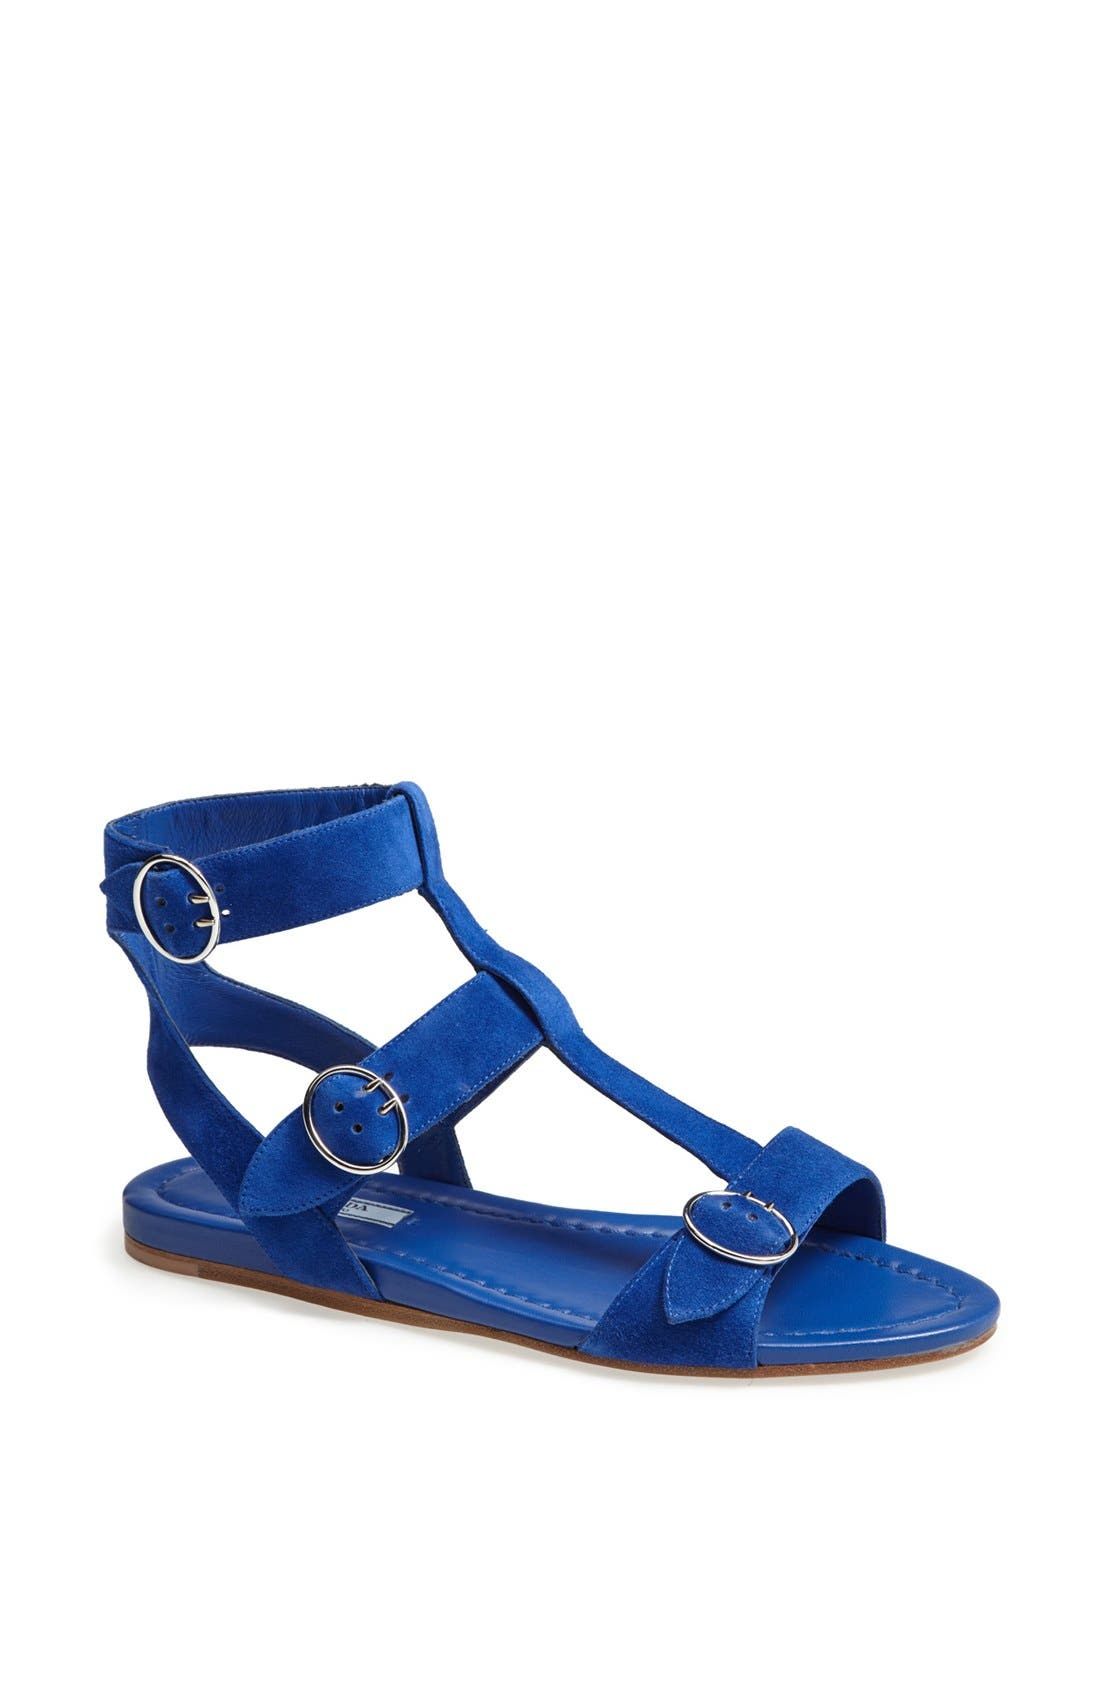 Alternate Image 1 Selected - Prada Triple Buckle Gladiator Sandal